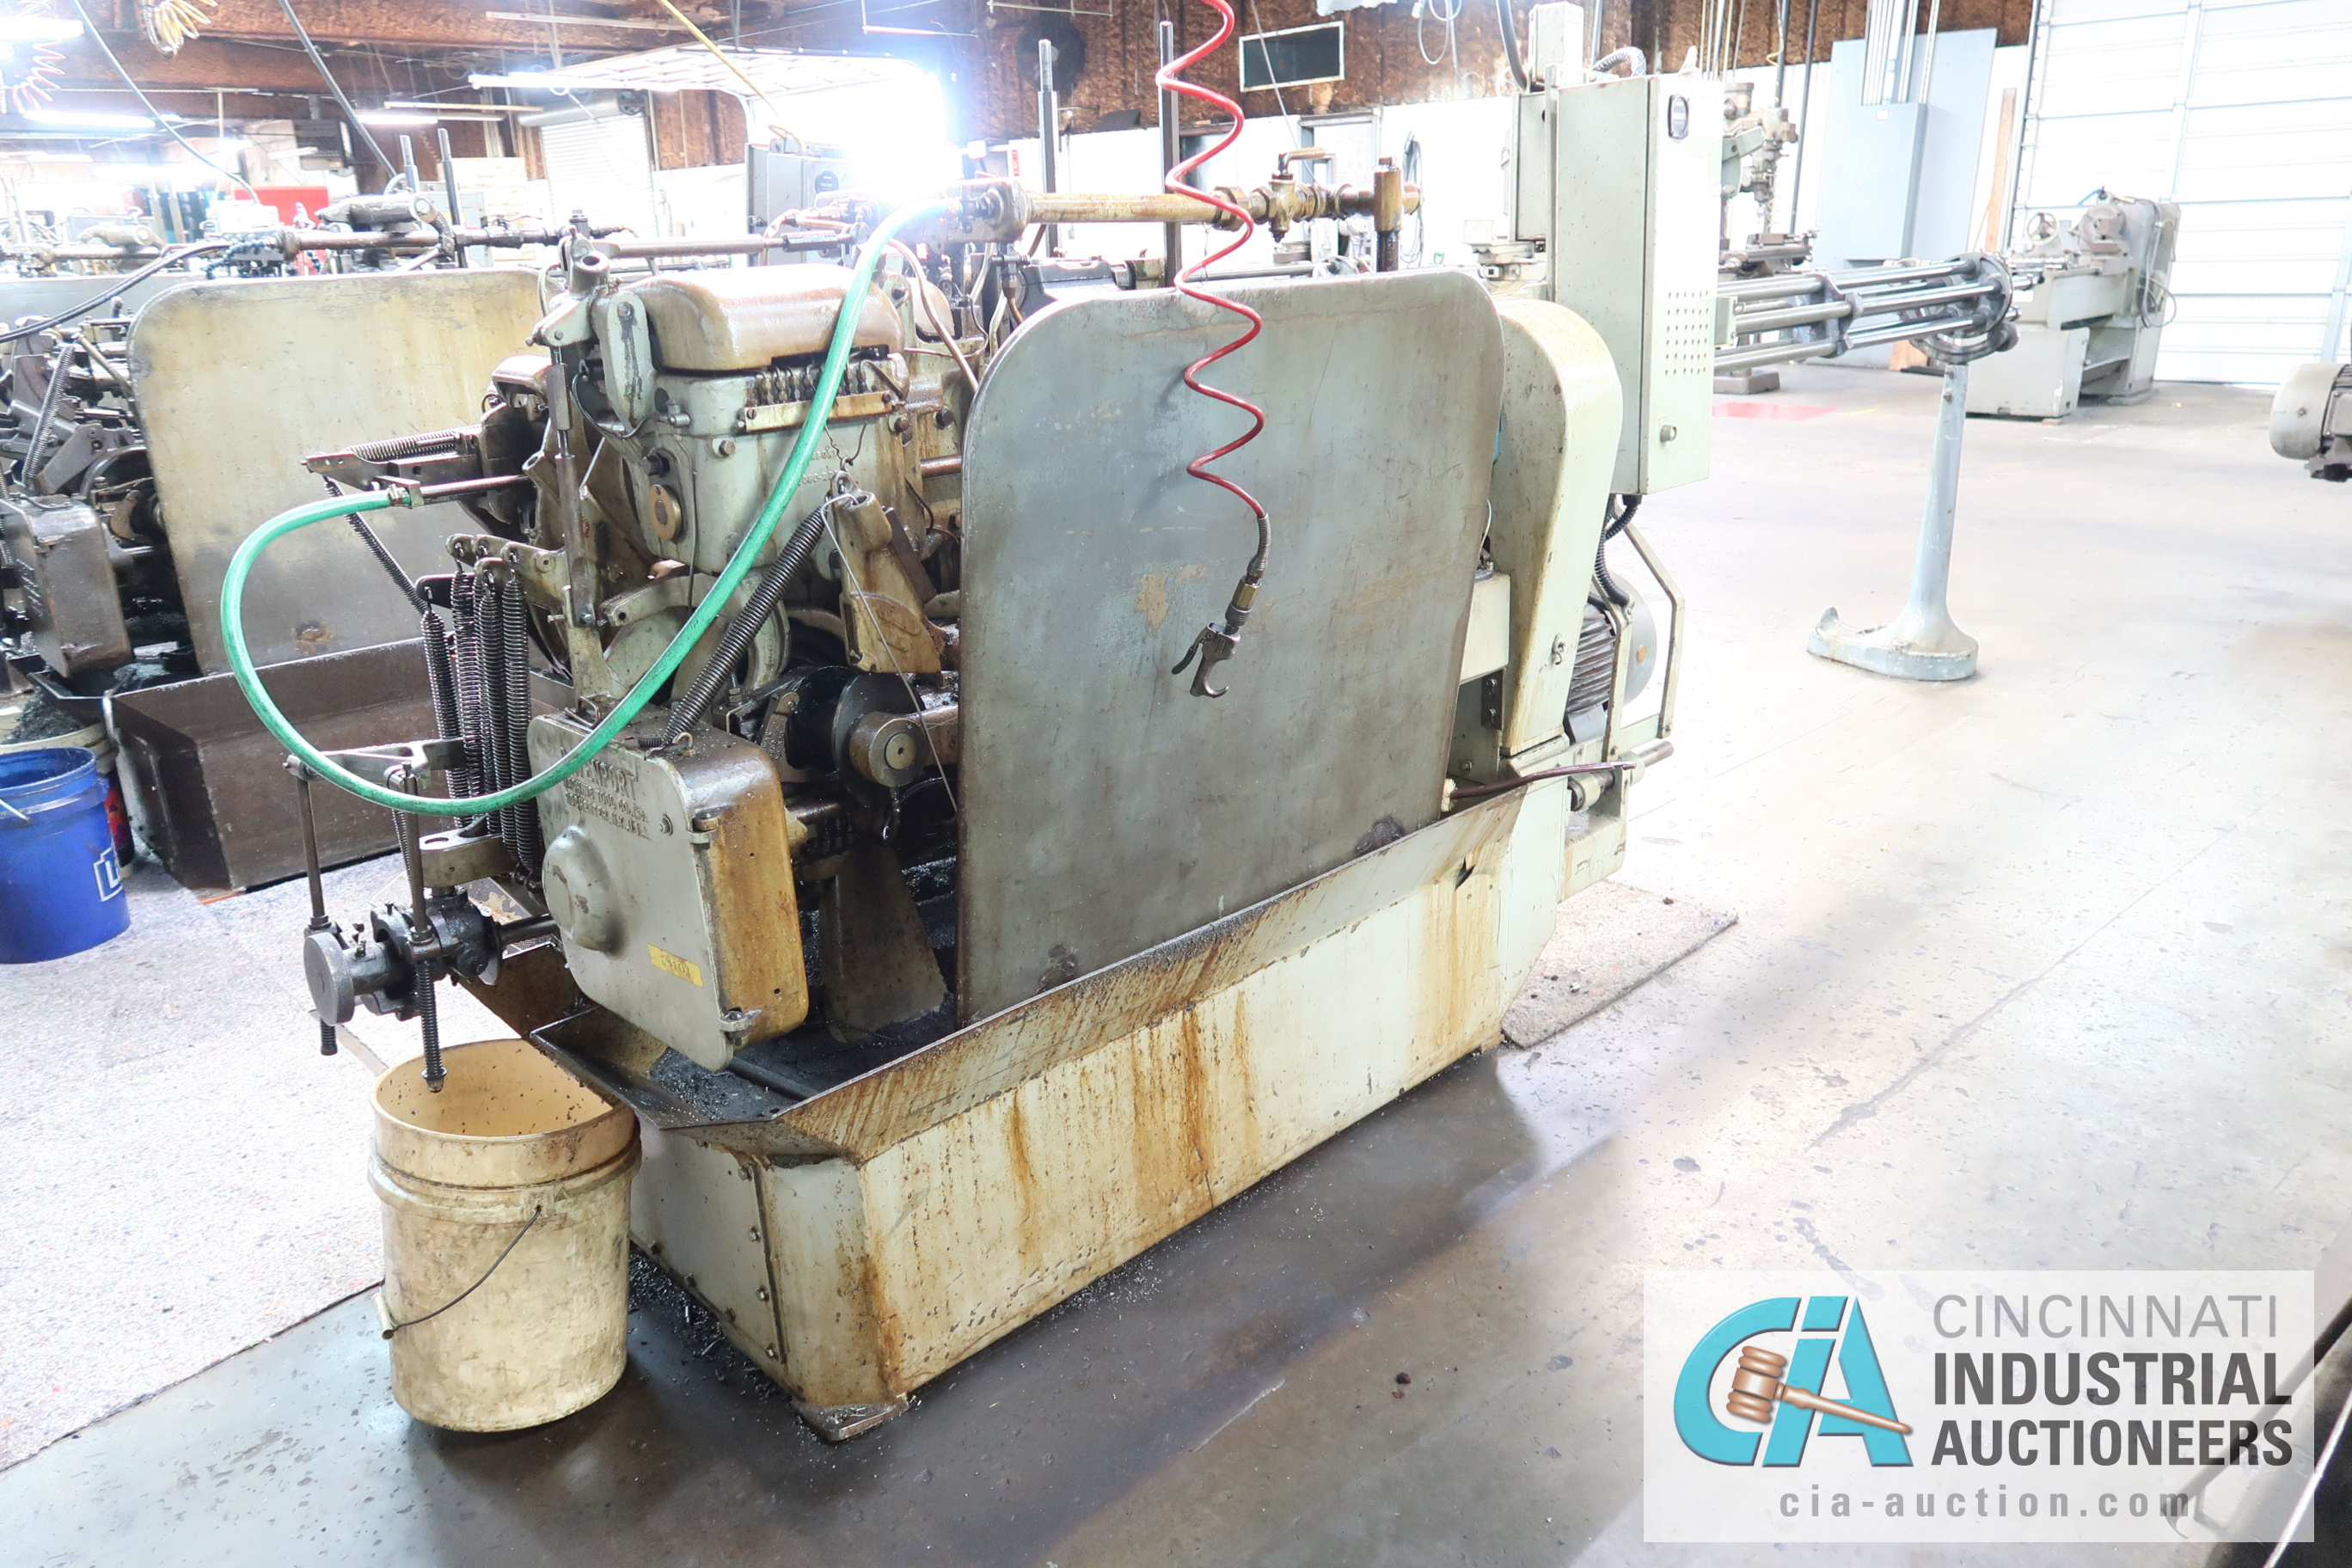 """3/4"""" DAVENPORT 5-SPINDLE SCREW MACHINE; S/N 8077 (NEW 11-1973), WITH THREADING CLUTCH, PICK OFF, - Image 3 of 4"""